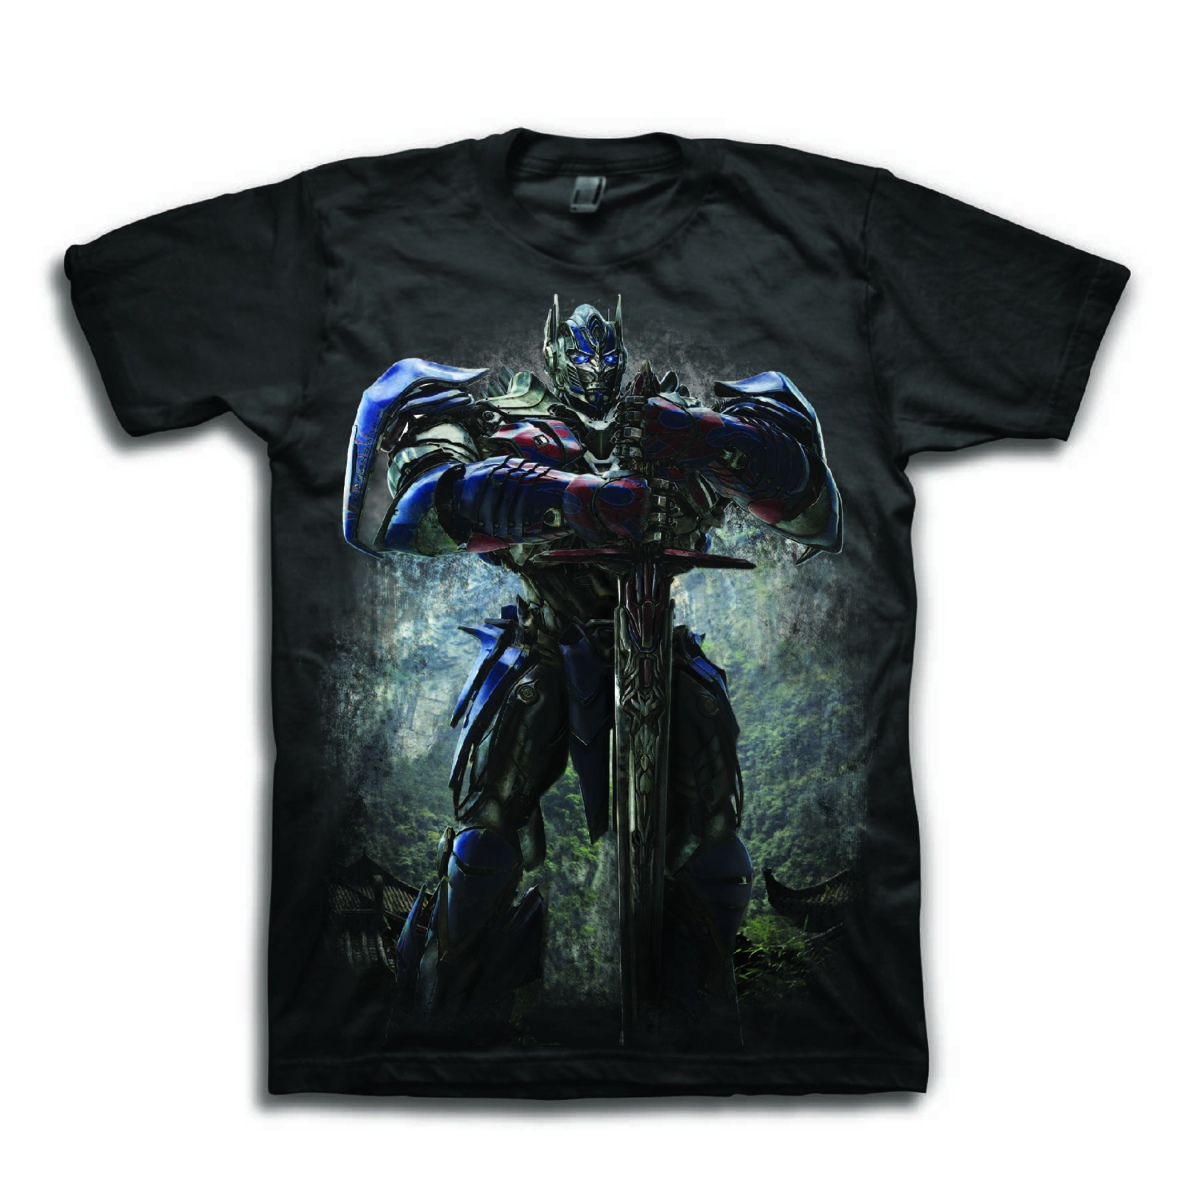 TF EXTINTION OPTIMUS SWORD PX BLK T/S SM